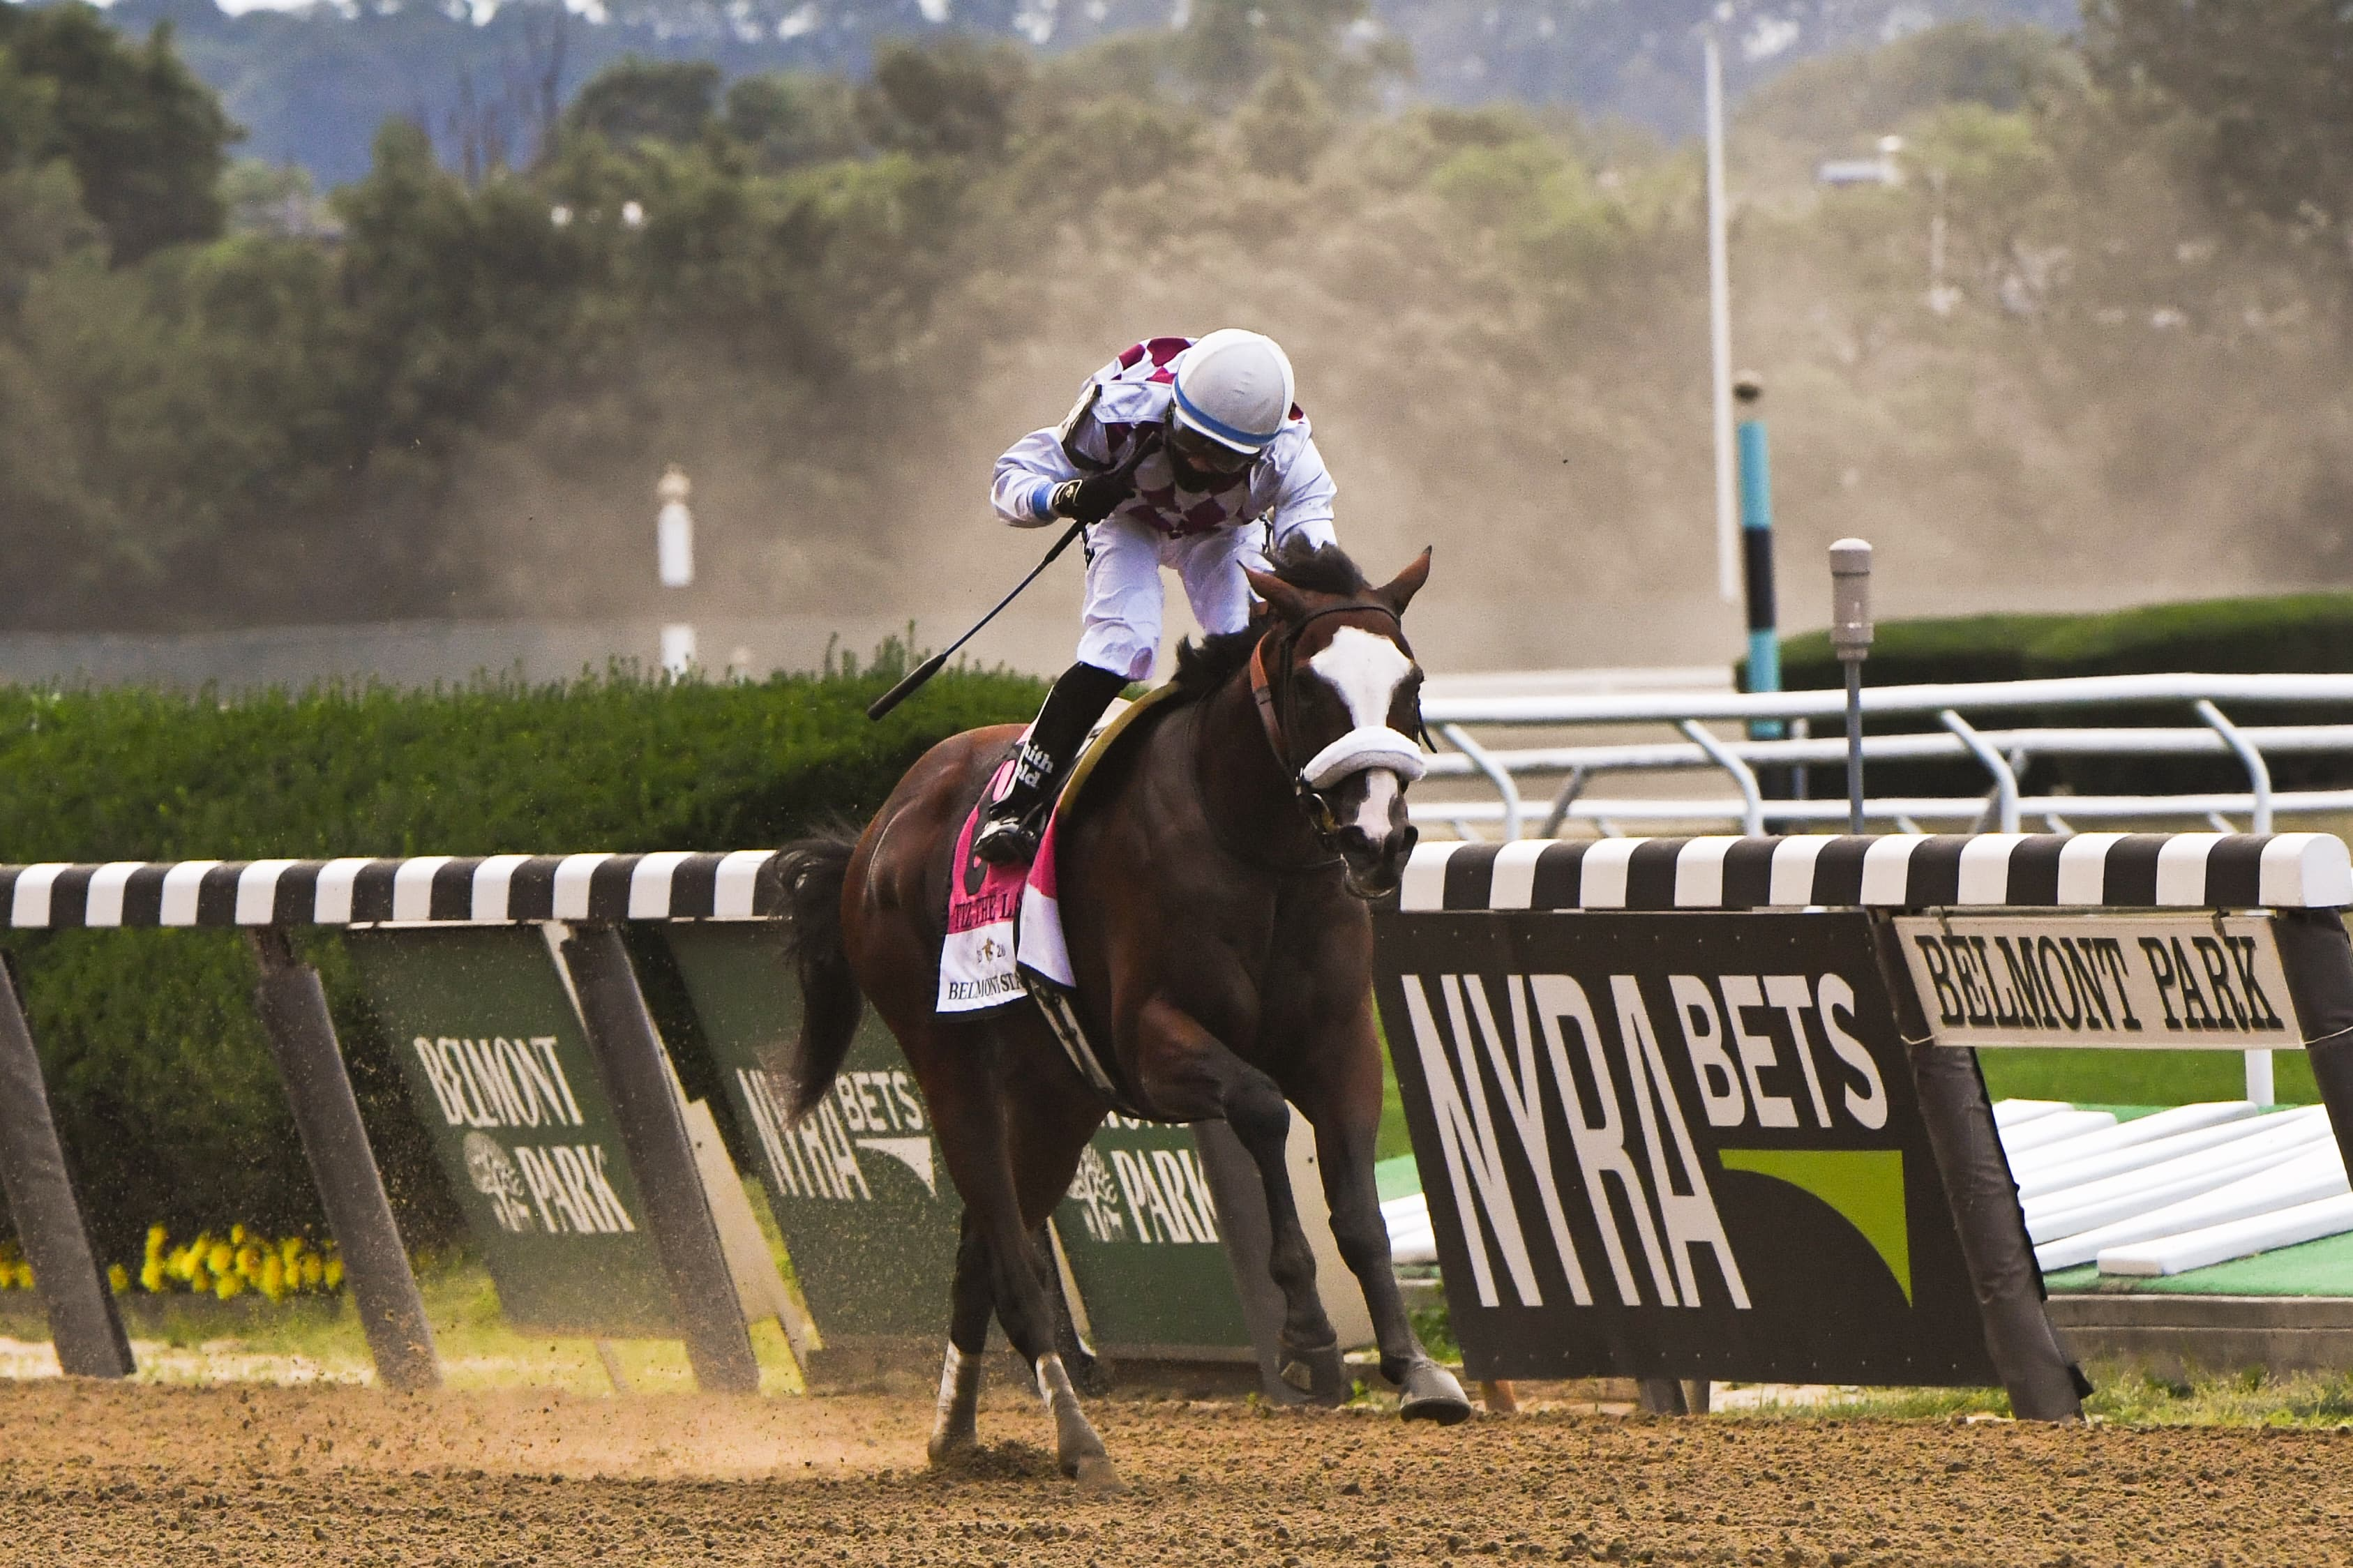 Owning a racehorse in the Belmont Stakes is more attainable as fractional ownership platforms grow